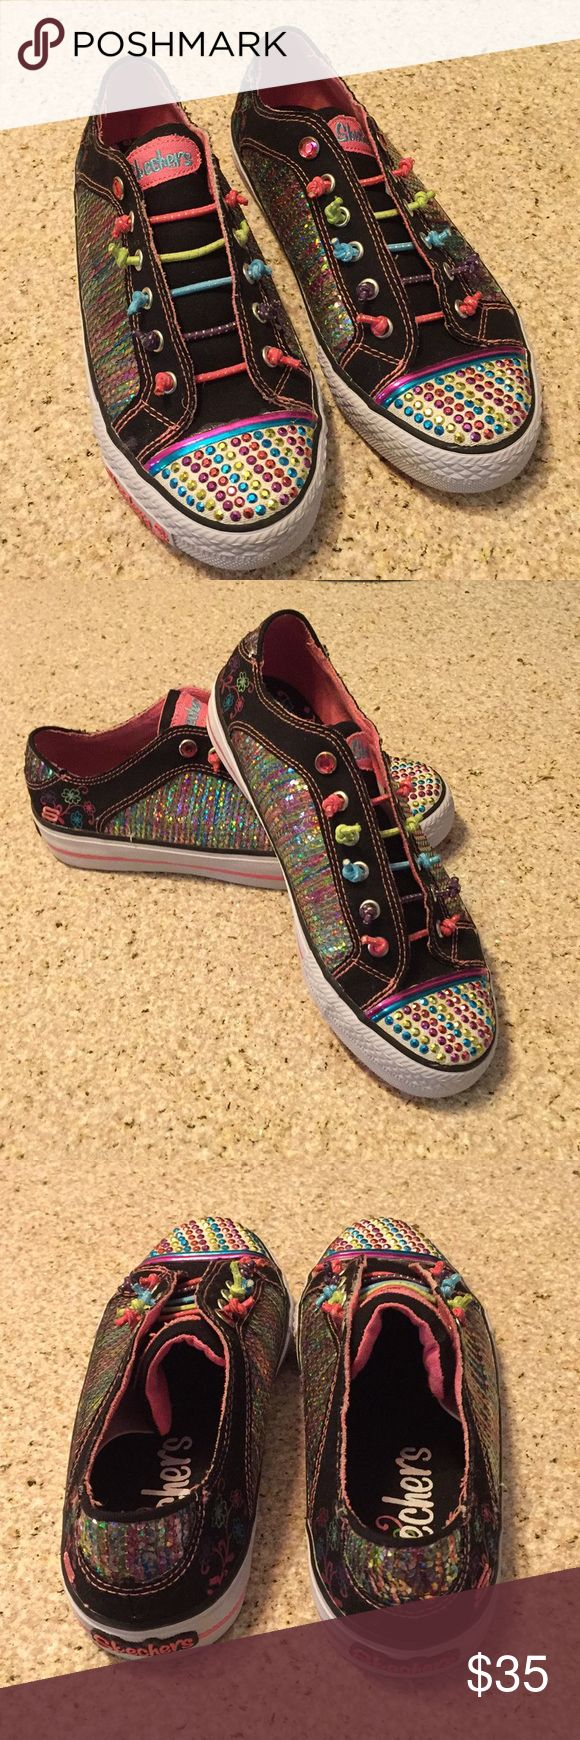 Like New Condition Skechers Twinkle Toes Size 4 Twinkle Toes by Skechers Size 4 Sneakers. Only worn for a few hours, pristine condition! Lots of bling will add flair to any tween girls outfit! 🤩 Skechers Shoes Sneakers